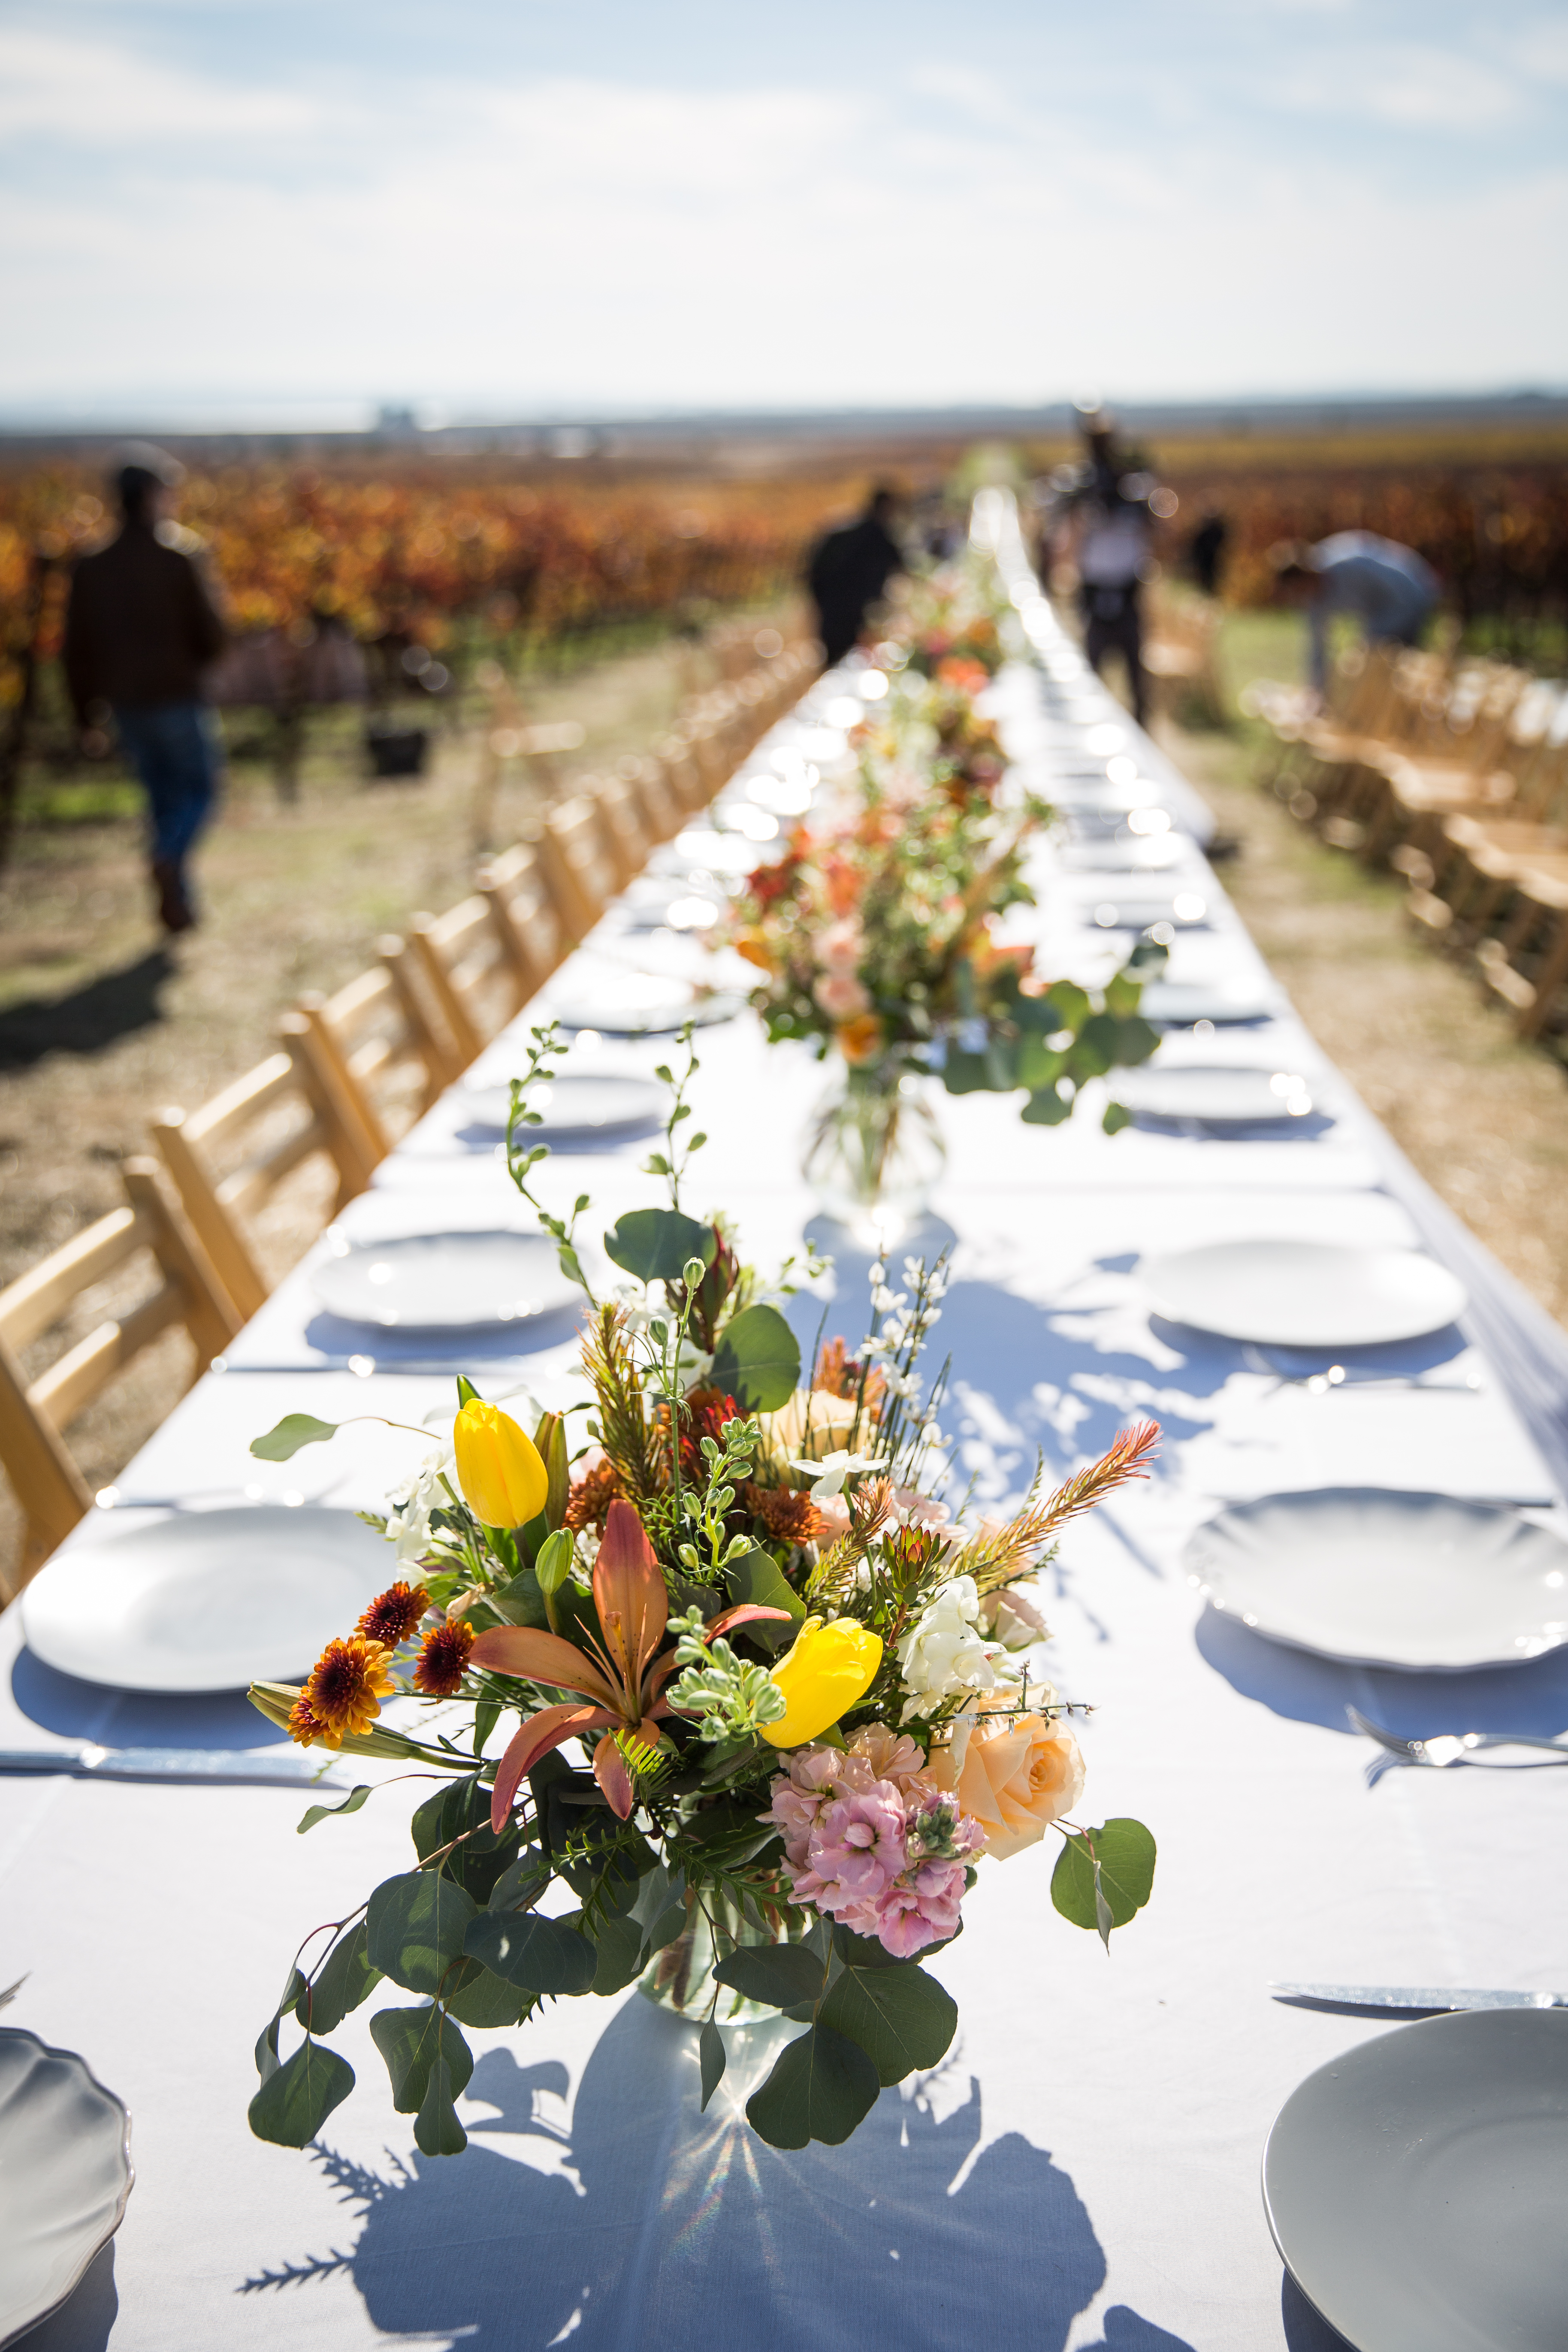 Visit California Grateful Table event on the Napa-Sonoma County line, November 21, 2017.